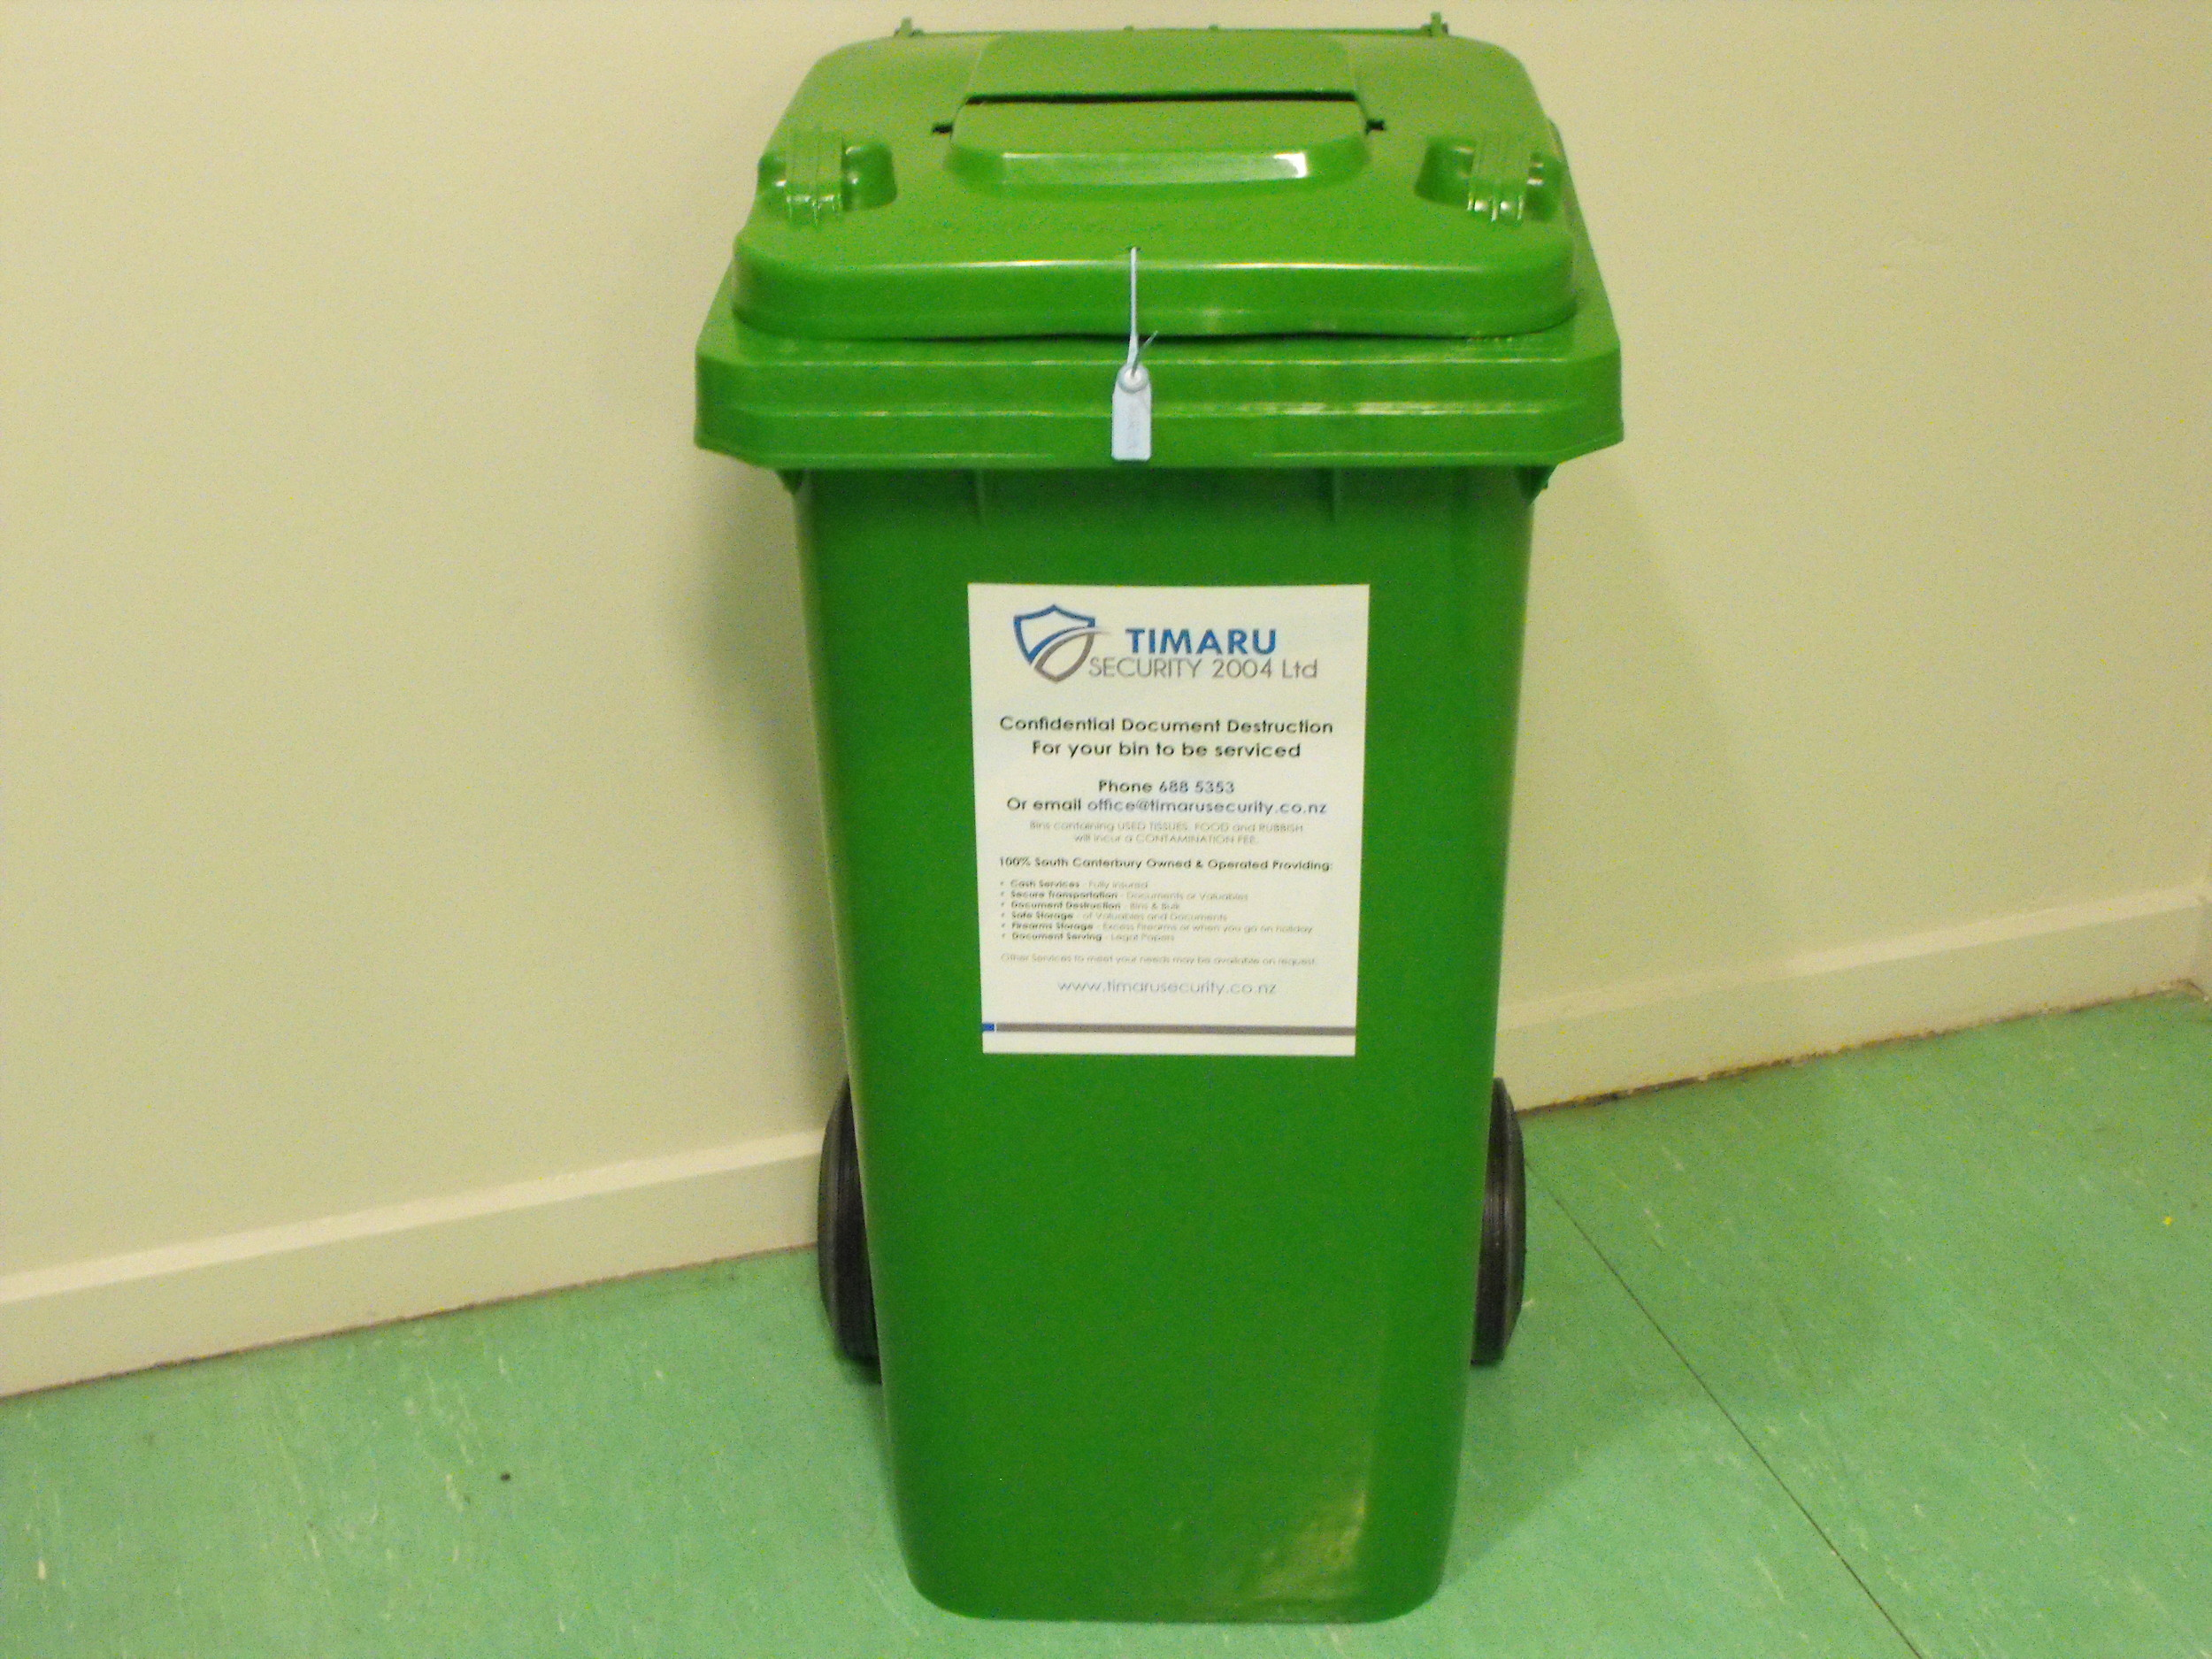 Secure bins emptied on regular basis or as required.